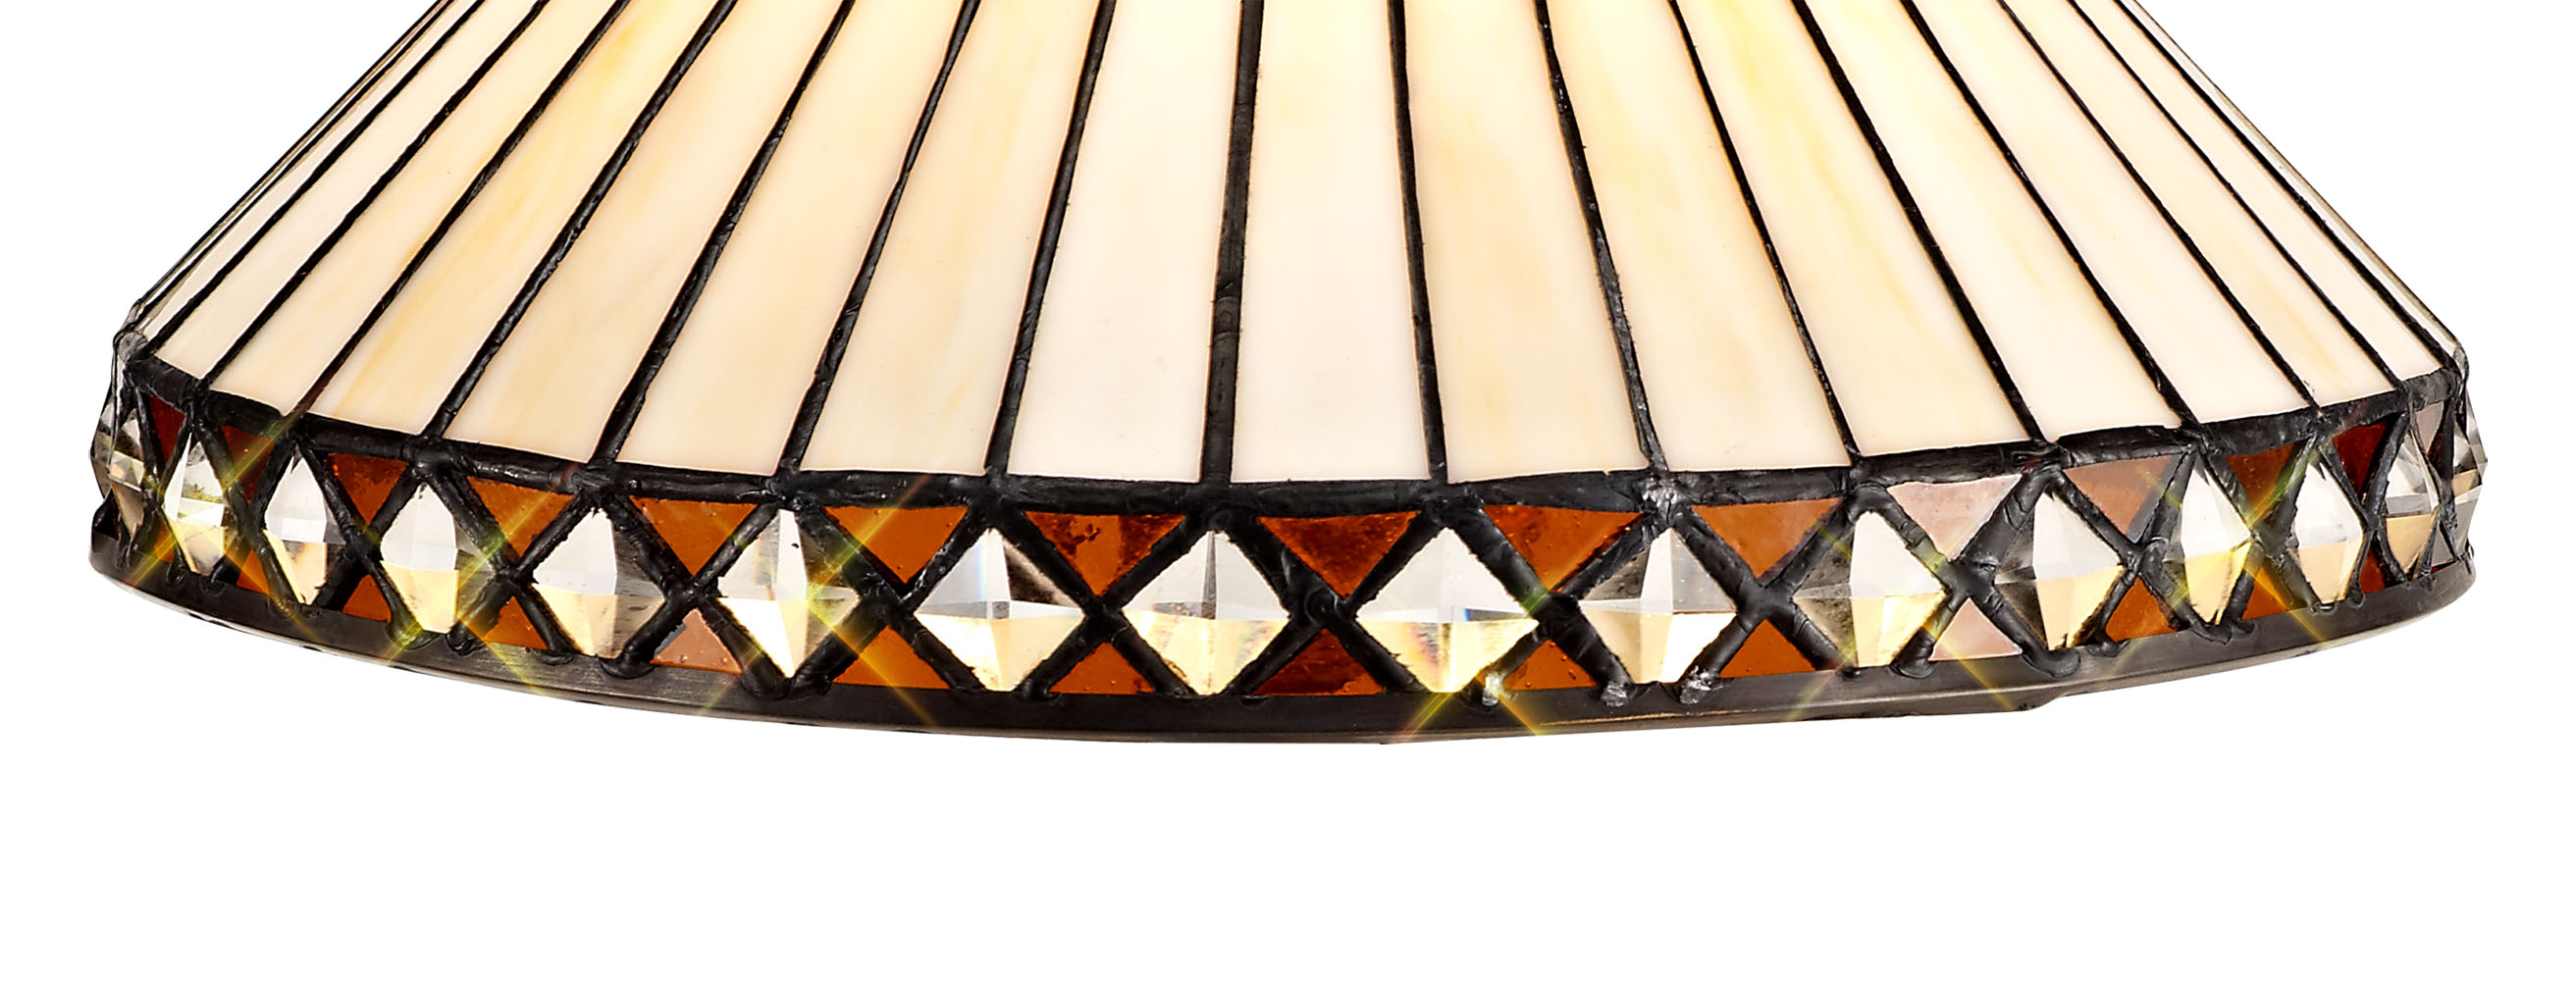 3 Light Downlighter Pendant E27 With 30cm Tiffany Shade, Amber/C/Crystal/Aged Antique Brass